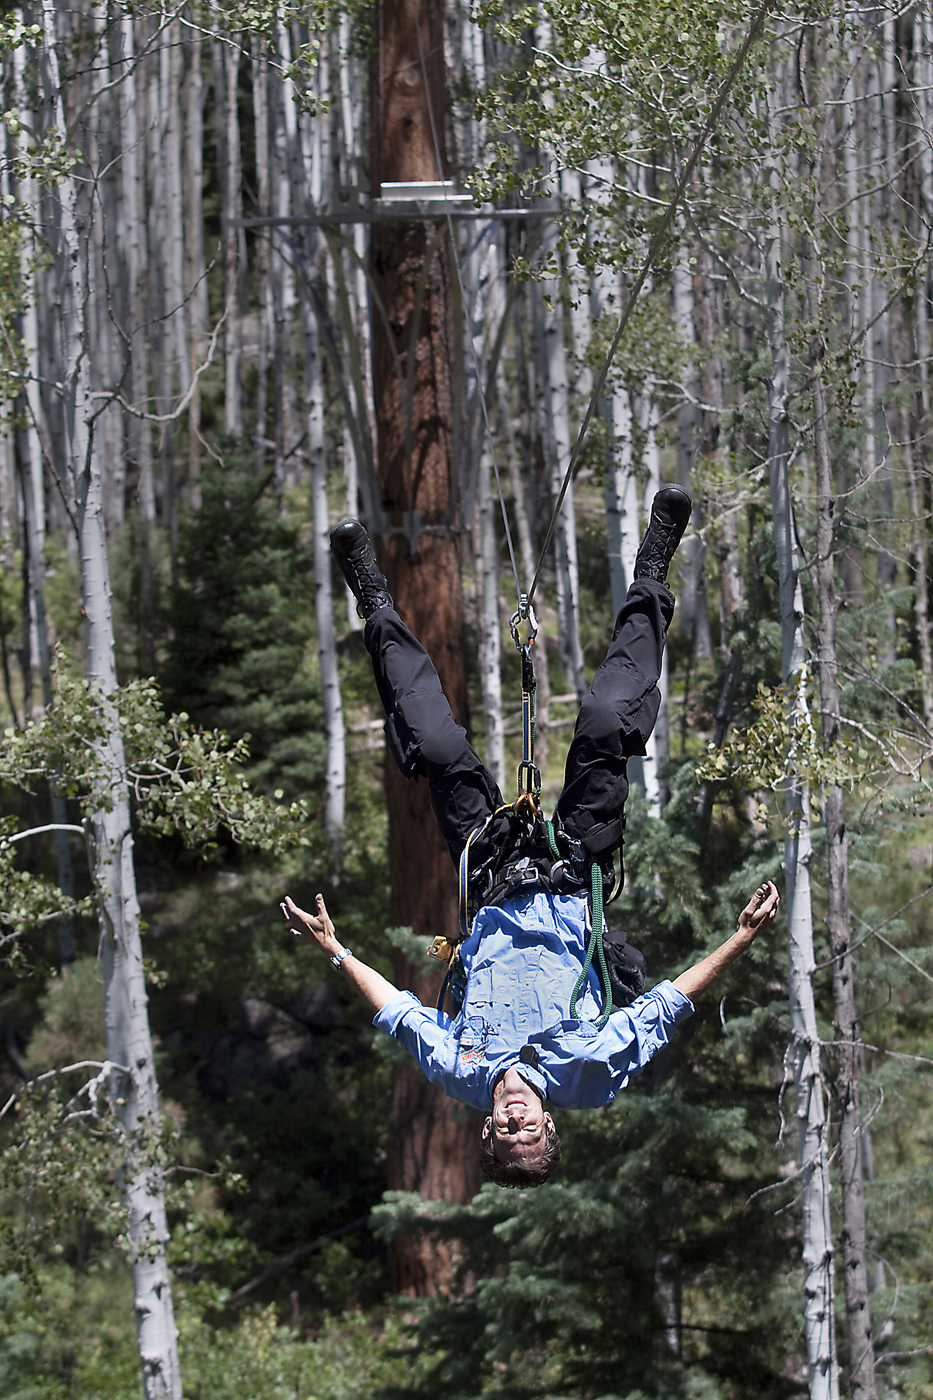 A zipline visitor ziplines upside down and hands-free at Soaring Tree Top Adventures.